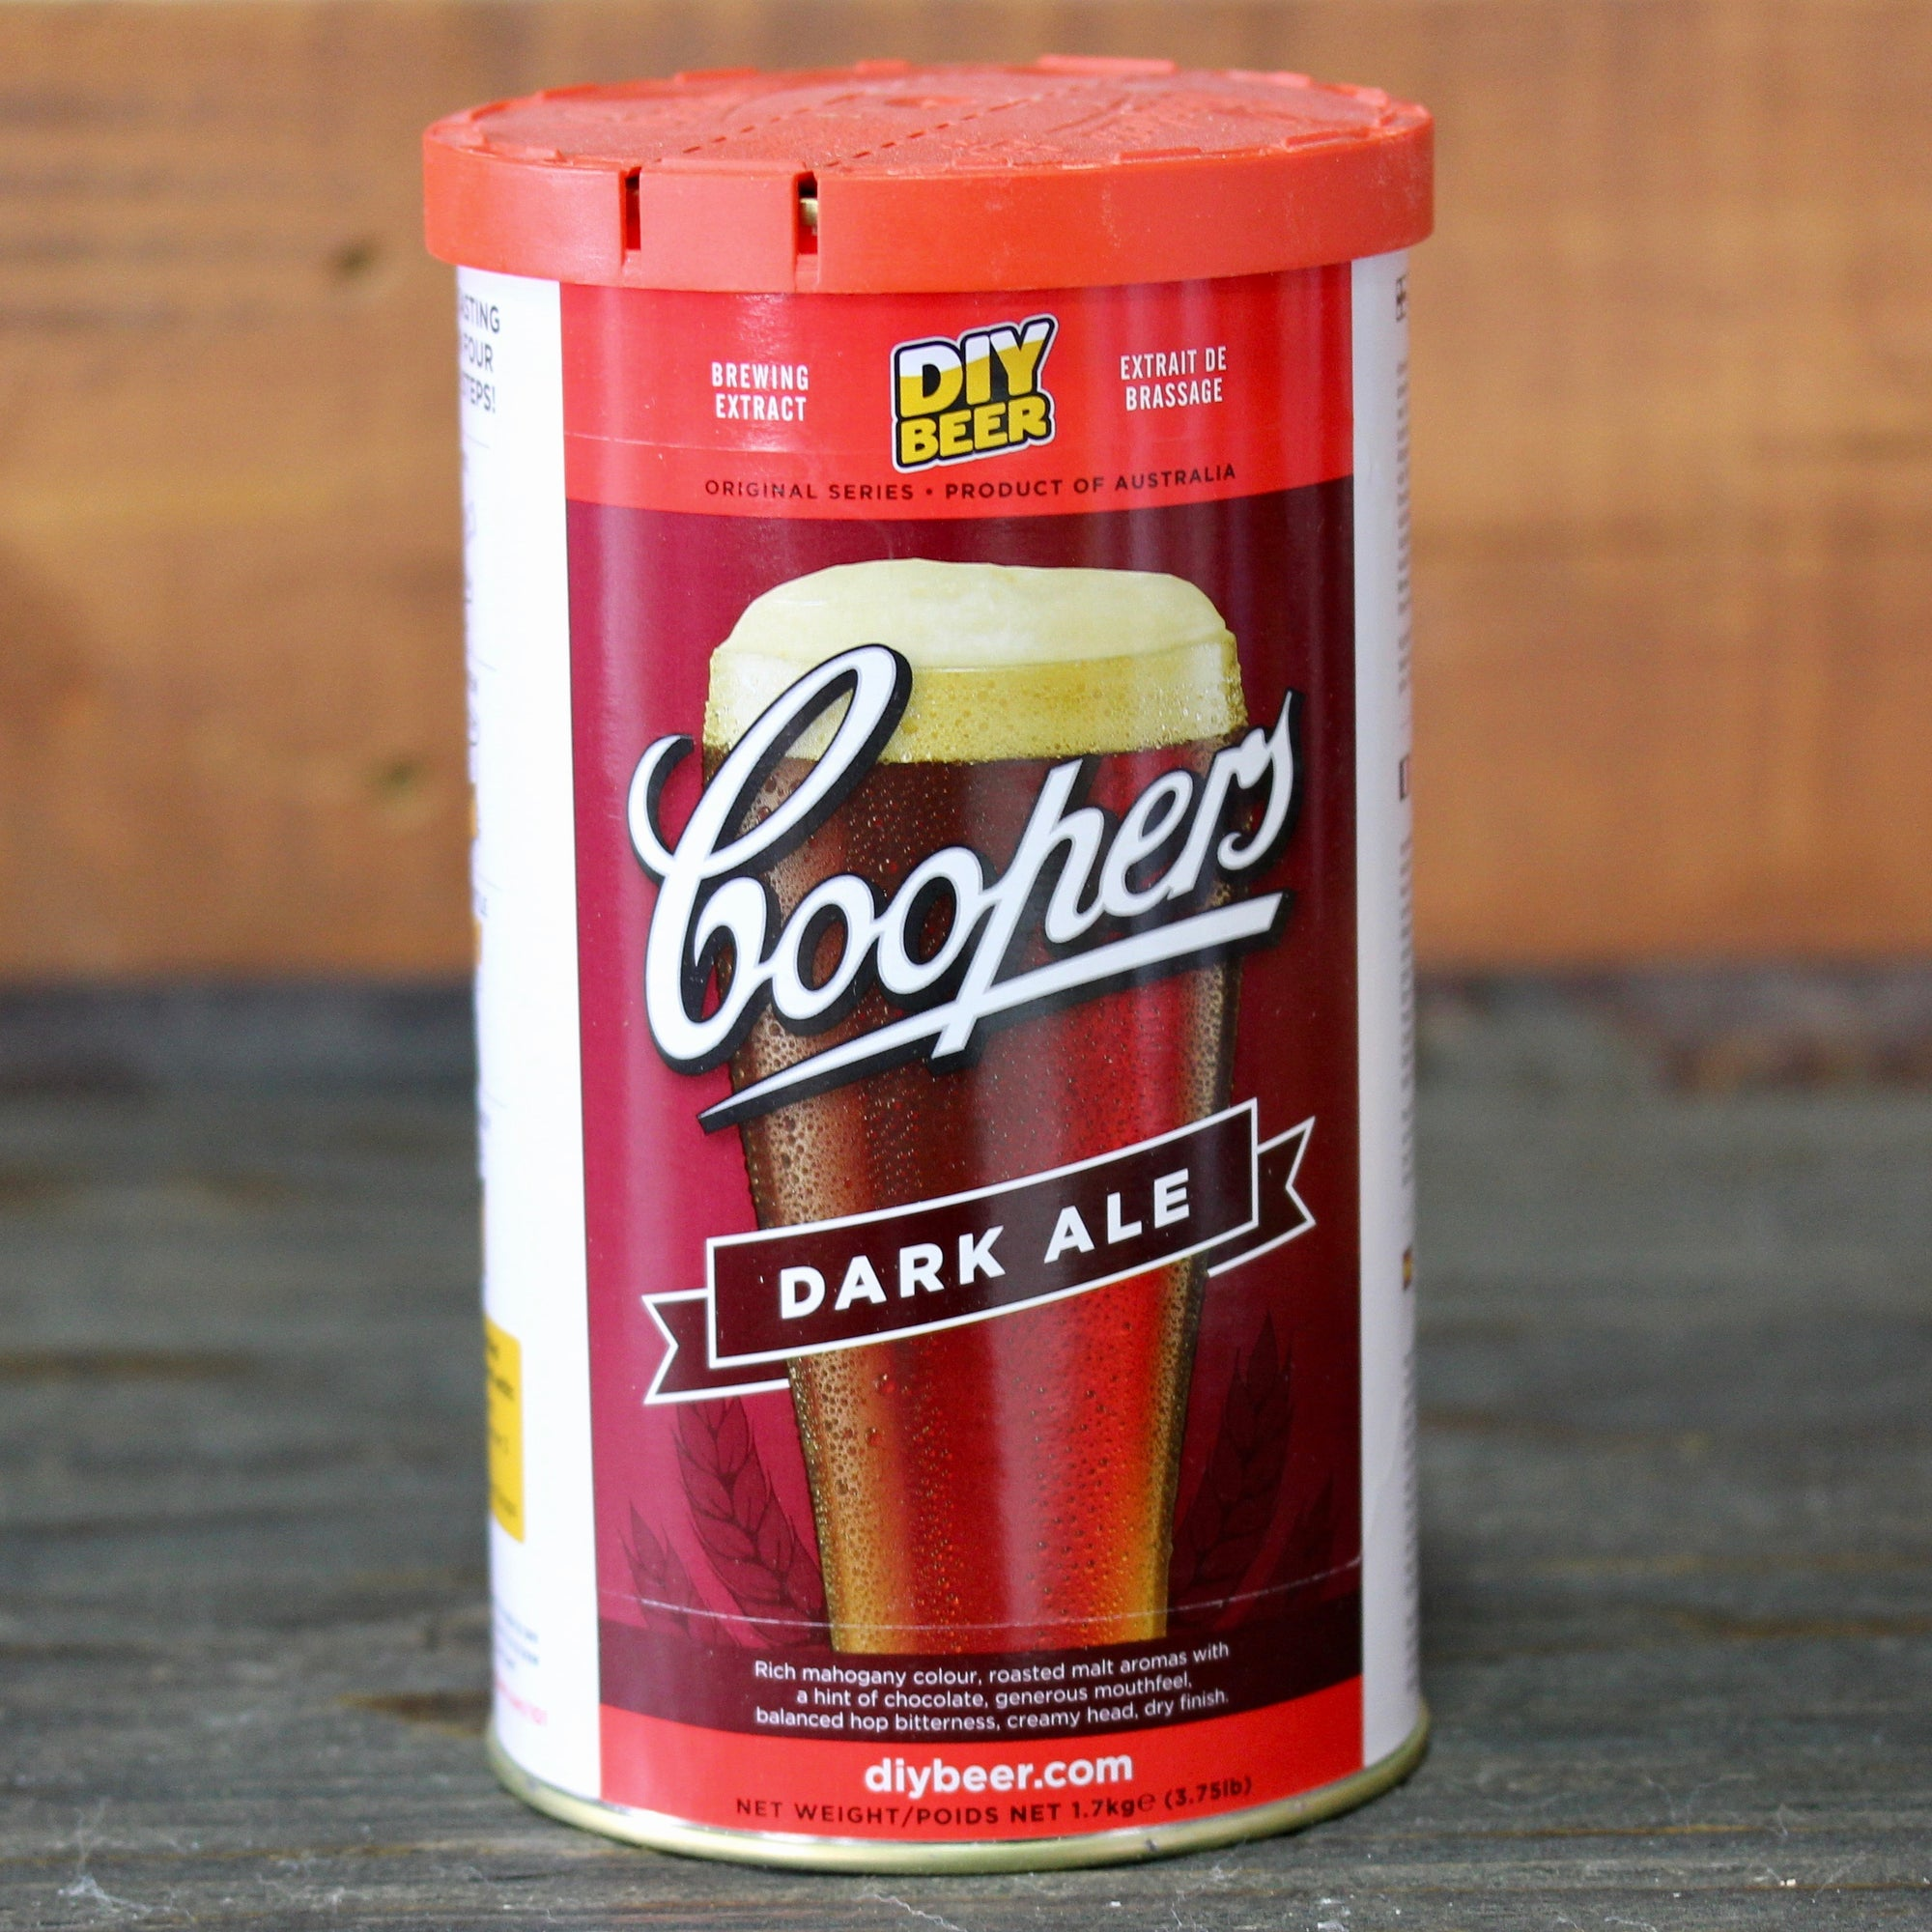 Coopers Beer Kit - Dark Ale